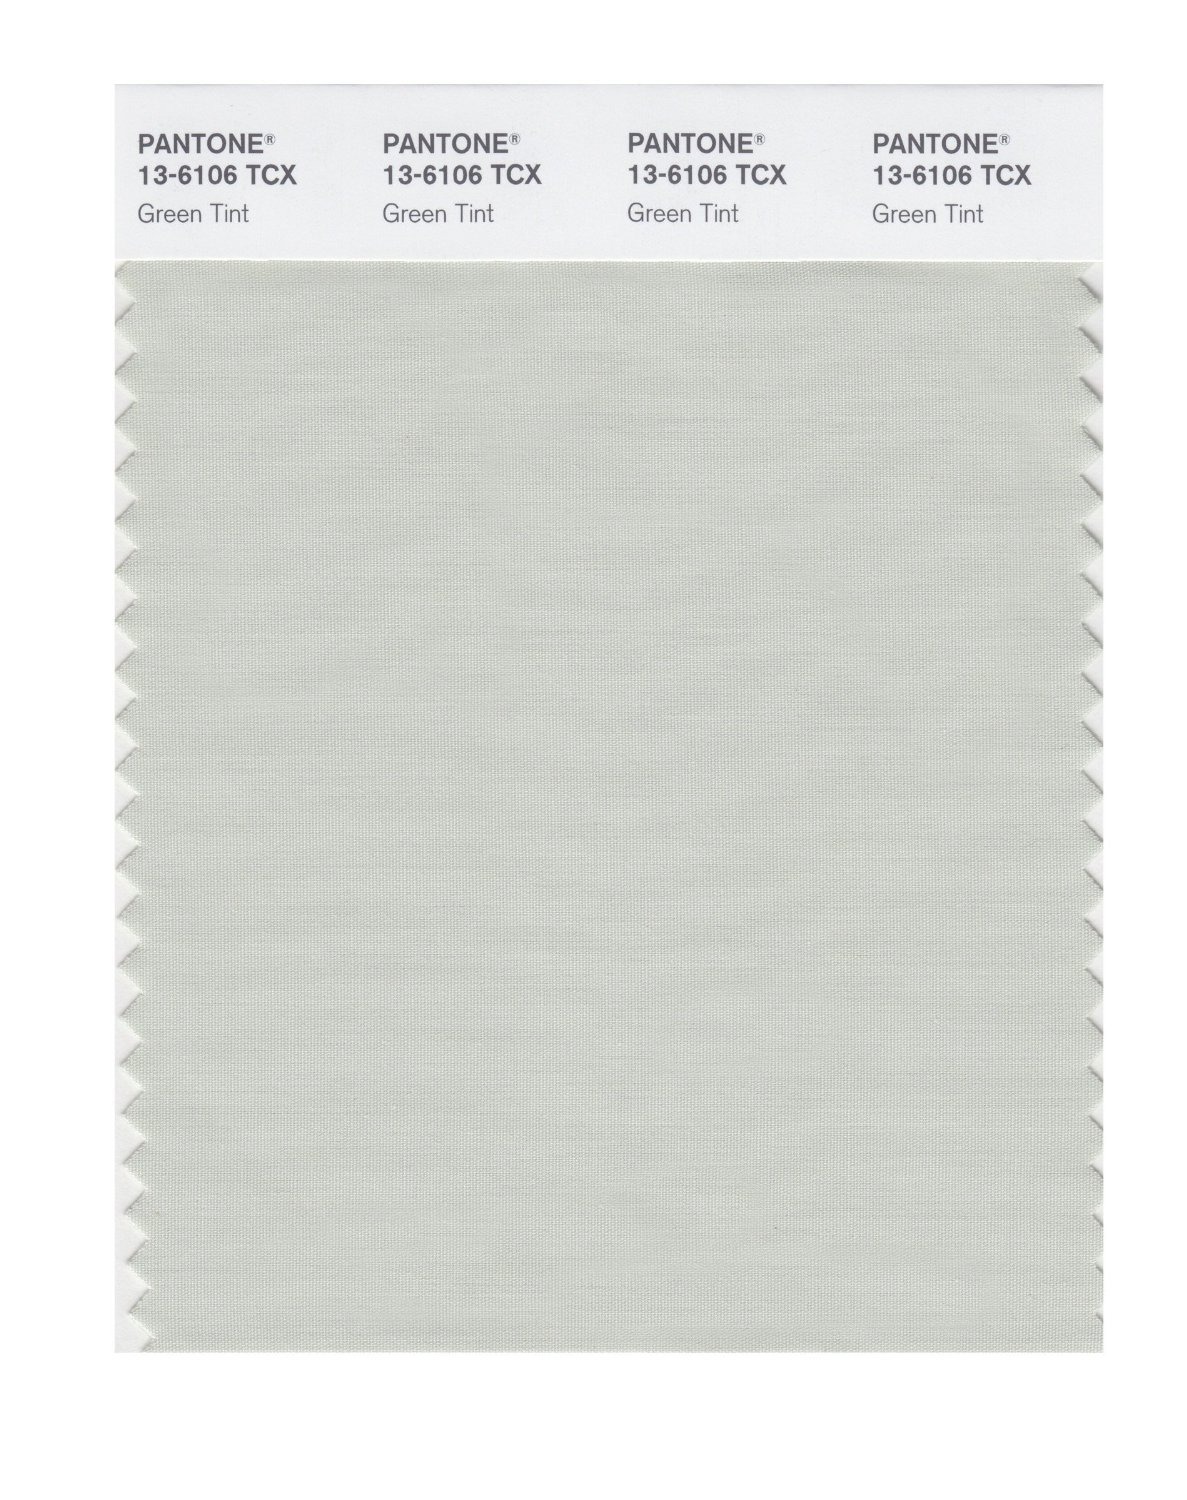 Pantone Smart Swatch 13-6106 Green Tint